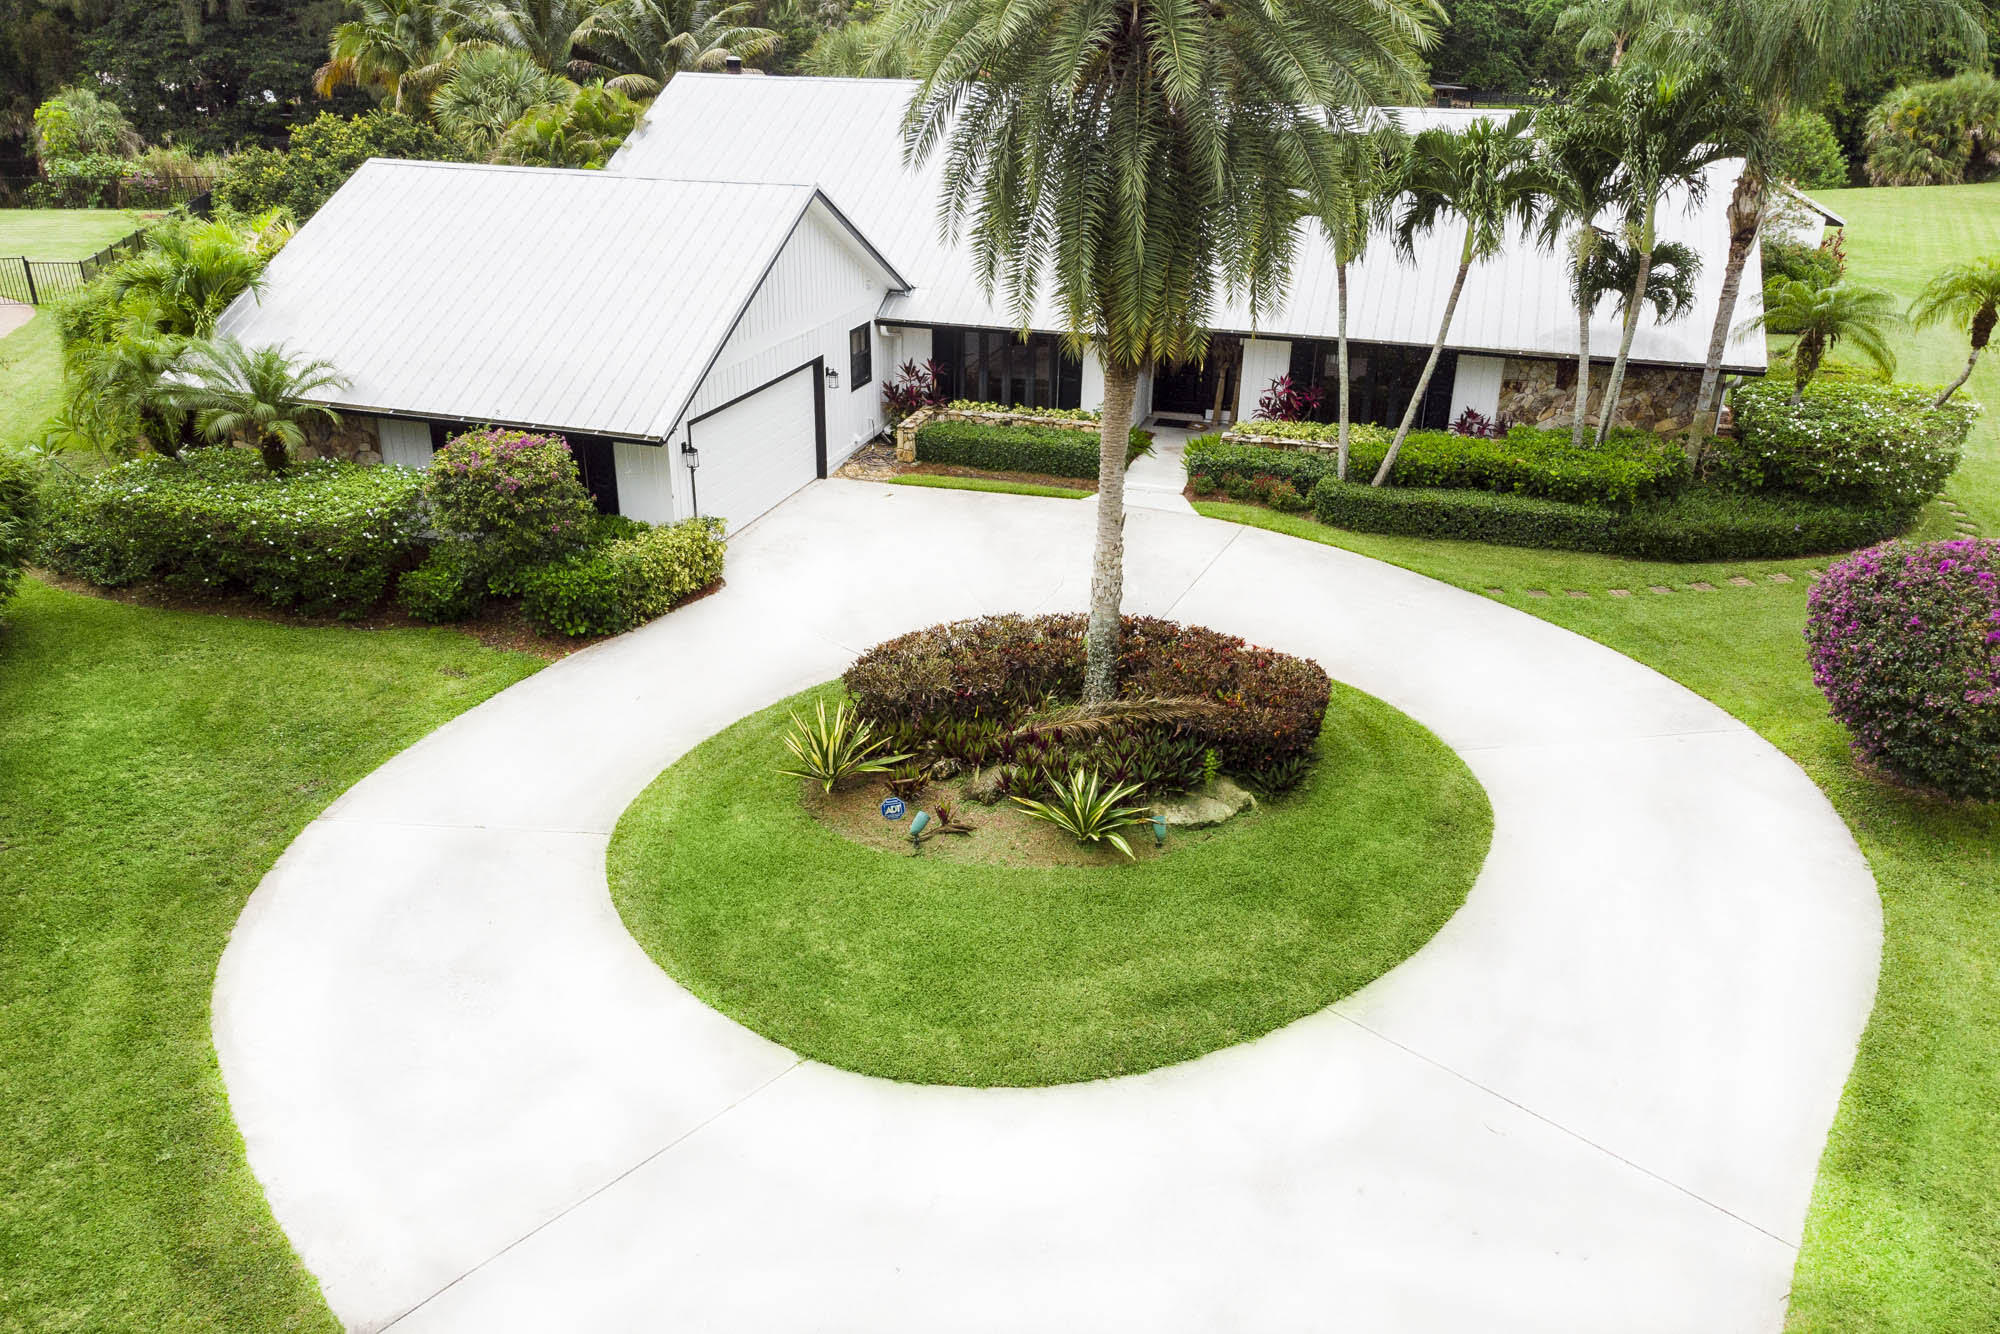 Find true, refreshing privacy in a secure gated community with this private, cul de sac, over-sized, water-side, premier lot.  Complete with a well-cared for, easy to love , solidly built-home, cottage, gazebo and generous pool.  We have just the home and 1 1/3 waterfront acre, all facing just about nothing but elegantly tall greenery, for you!  BEST STREET LOCATION IN STEEPLECHASE....One-of-a-kind ...Spectacular 1.03 acre property on a private quiet cul-de-sac, man-gate security with roaming security 24/7. Quick access to the heart of Palm Beach Gardens and the North gate on to Northlake. Minutes to I-95, Florida Turnpike, shopping, schools, golf, and Palm Beach International Airport. This one-story split floorplan has 4 large Bedrooms/2.1 Baths in the main house and a 1 large Bedroom, LR and 1 Bath in the guest house, a screened porch, large pool, gazebo and a one-bedroom guest House. The large informal living room is enhanced by a gorgeous wooded ceiling and a real wood-burning fireplace giving it a cozy feel and is just off the kitchen giving it that wide open concept popular in today's market. The formal living and dining rooms both have Light bright interiors boasting huge windows and sliders bringing in the gorgeous manicured outdoors into every room. Enjoy sitting out in the gazebo looking down at the wide flowing canal waterways. Kitchen has been updated with a Kenmore Elite Appliance package with double ovens and a flat separate cooktop. This traditional home boasts an energy-efficient metal roof, hurricane safe windows and doors, a separate outdoor electrical connection for the generator and lots of improvements over the years; metal roof, kitchen, updated electrical, pool and more. LOW HOA fees in this exclusive relaxing community of single-family homes all having over an acre of land. Bring your toys, kids, family, friends, and take in the outdoors in the privacy of your own home! BONUS for this quiet waterfront secluded property is its adorable separat